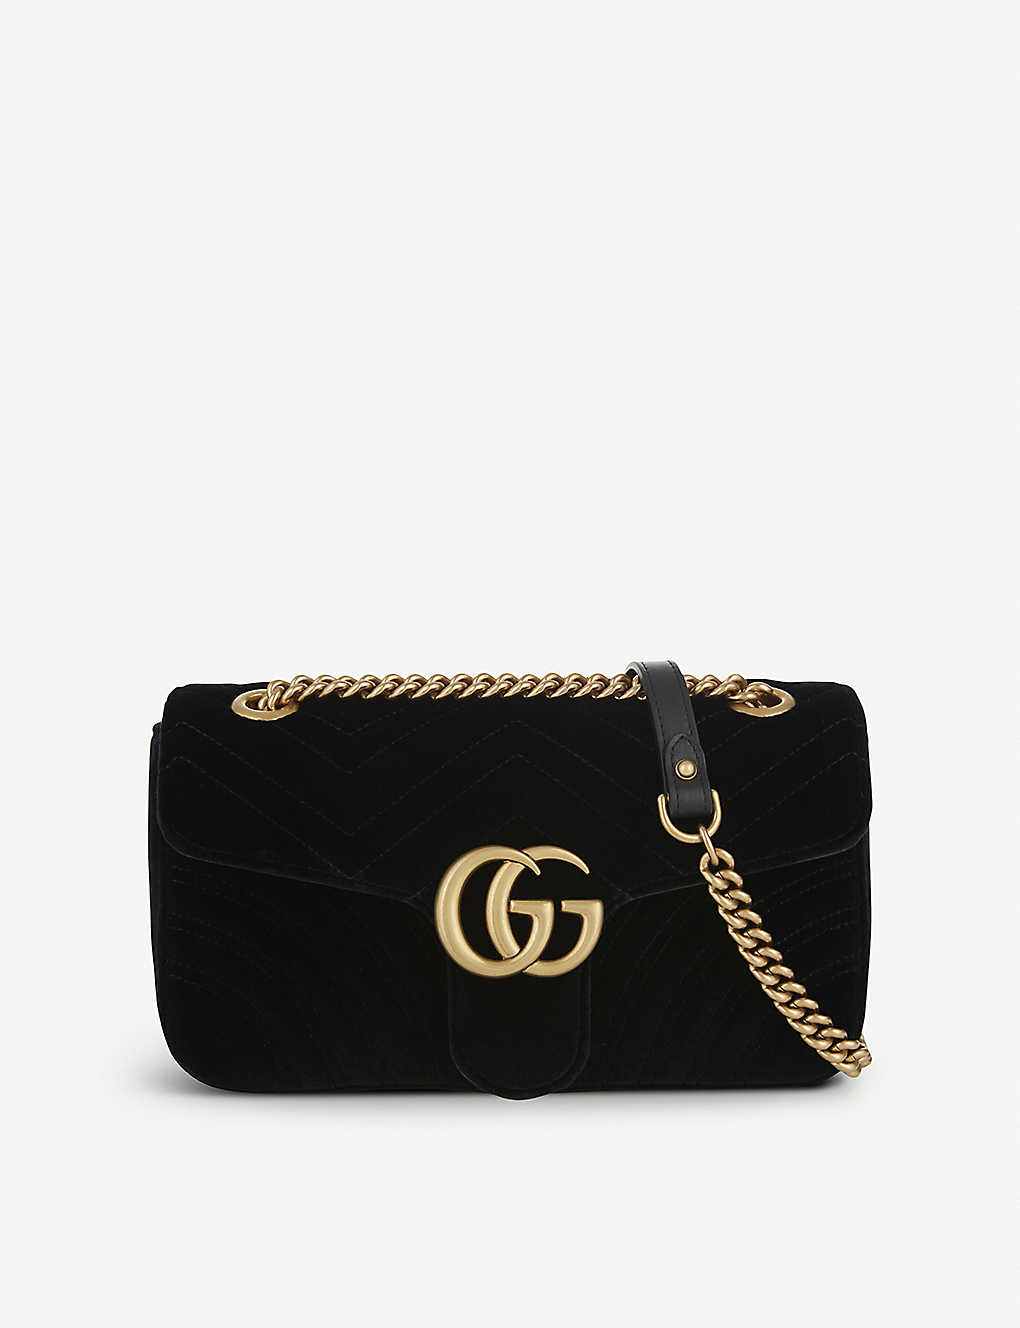 7af23a775 GUCCI - Marmont small velvet shoulder bag | Selfridges.com